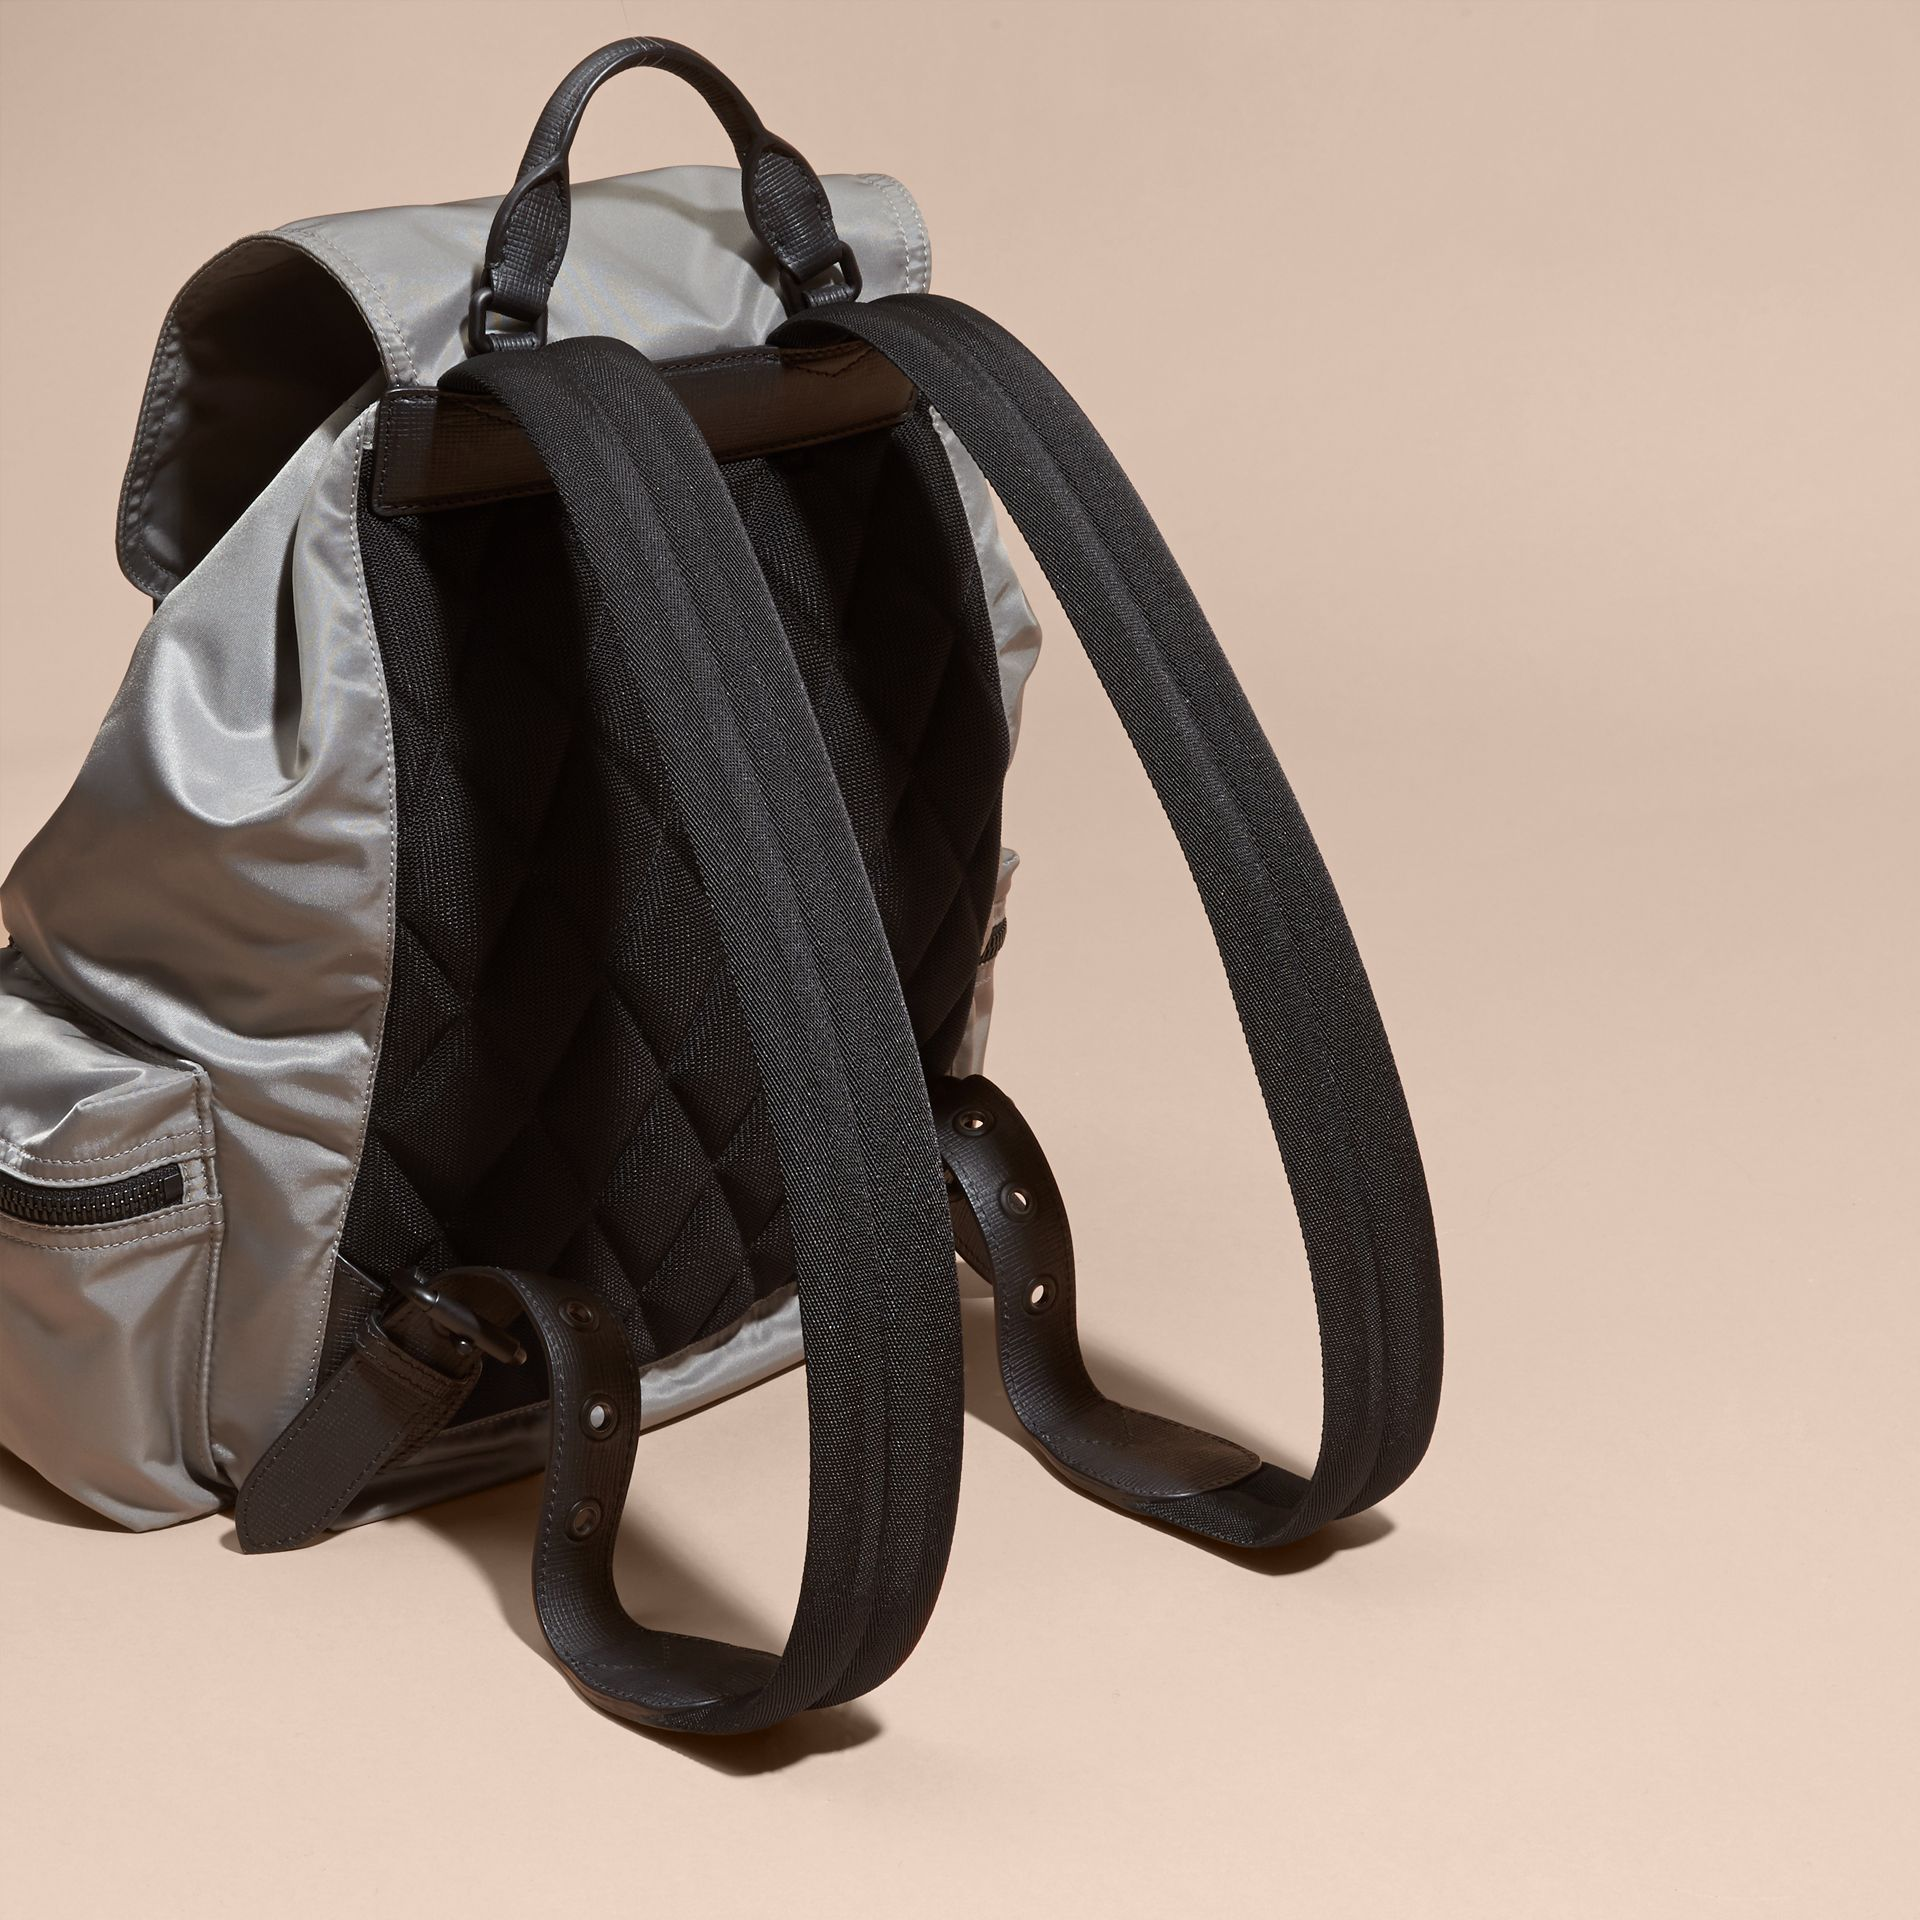 Thistle grey The Large Rucksack in Technical Nylon and Leather Thistle Grey - gallery image 4